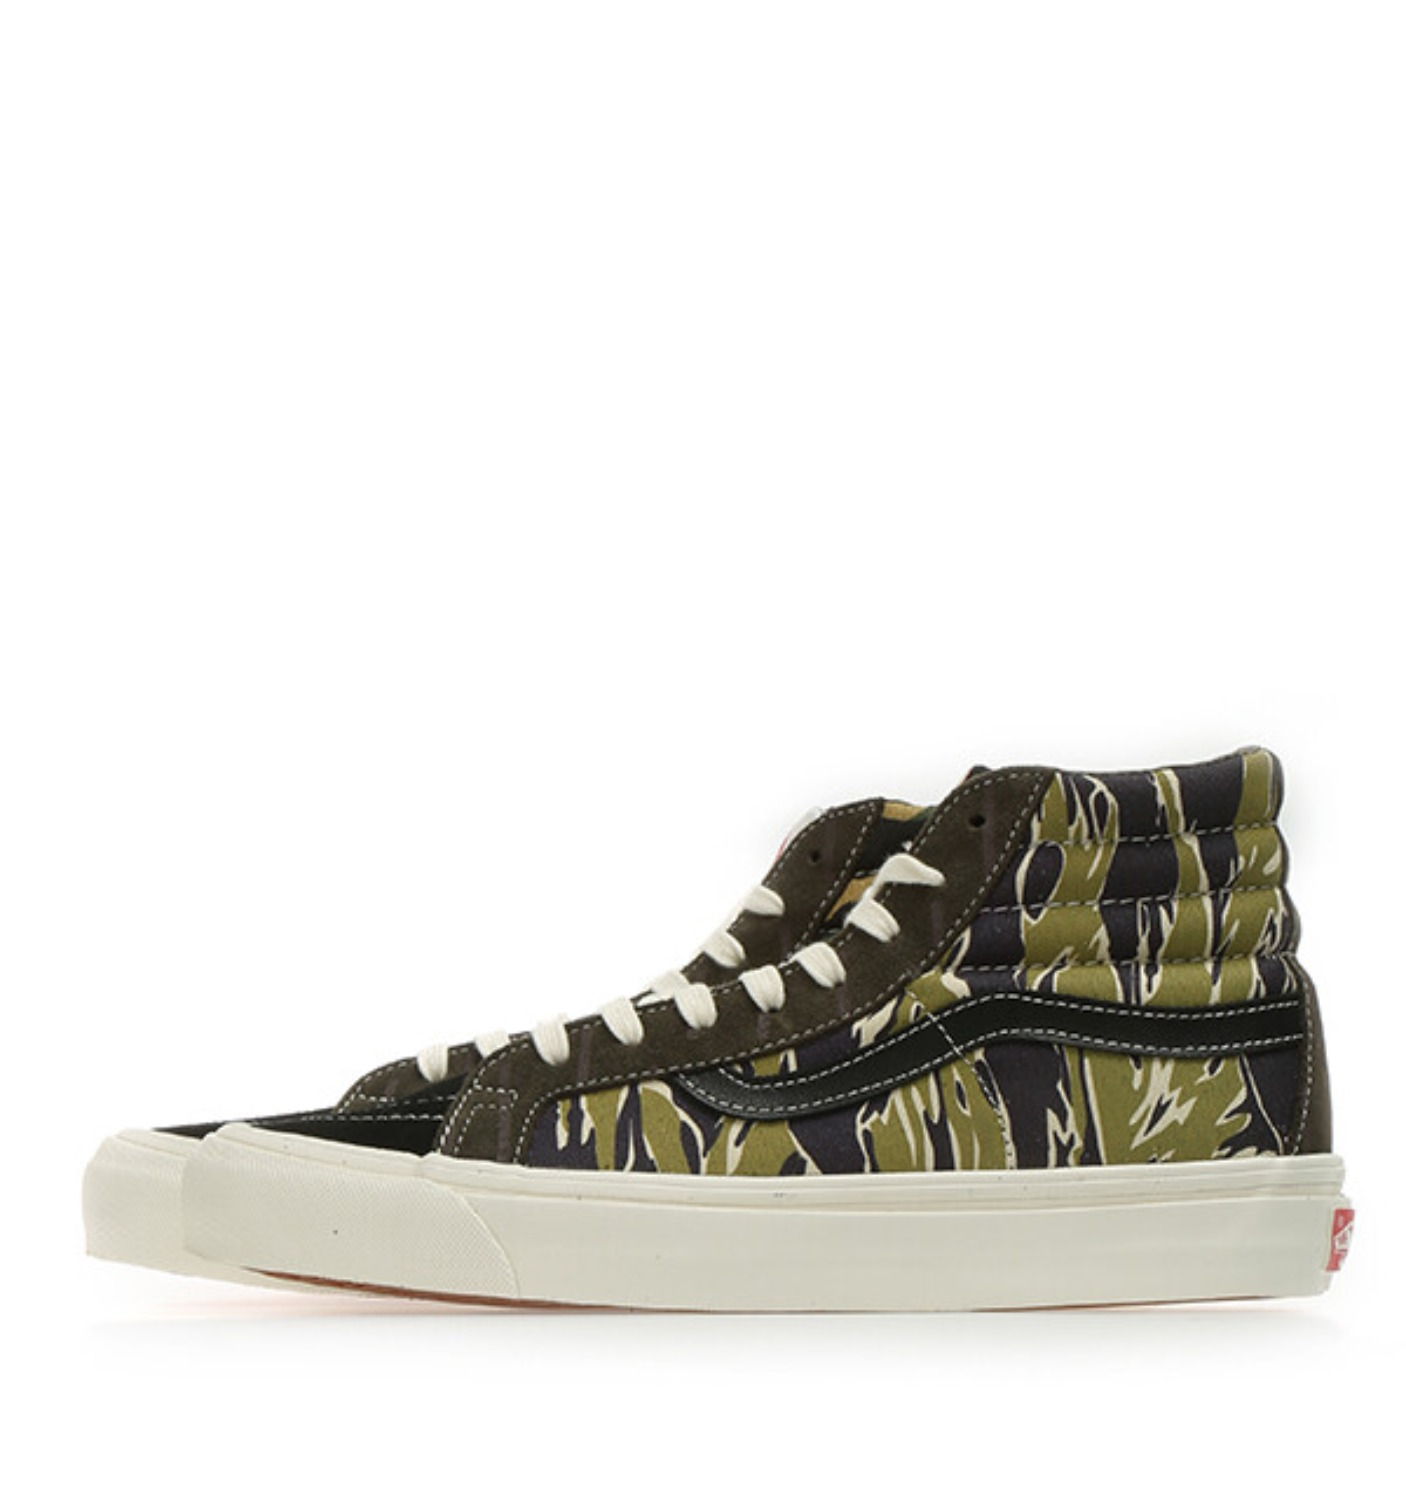 OG SK8-HI LX(CANVAS) MIXED CAMO